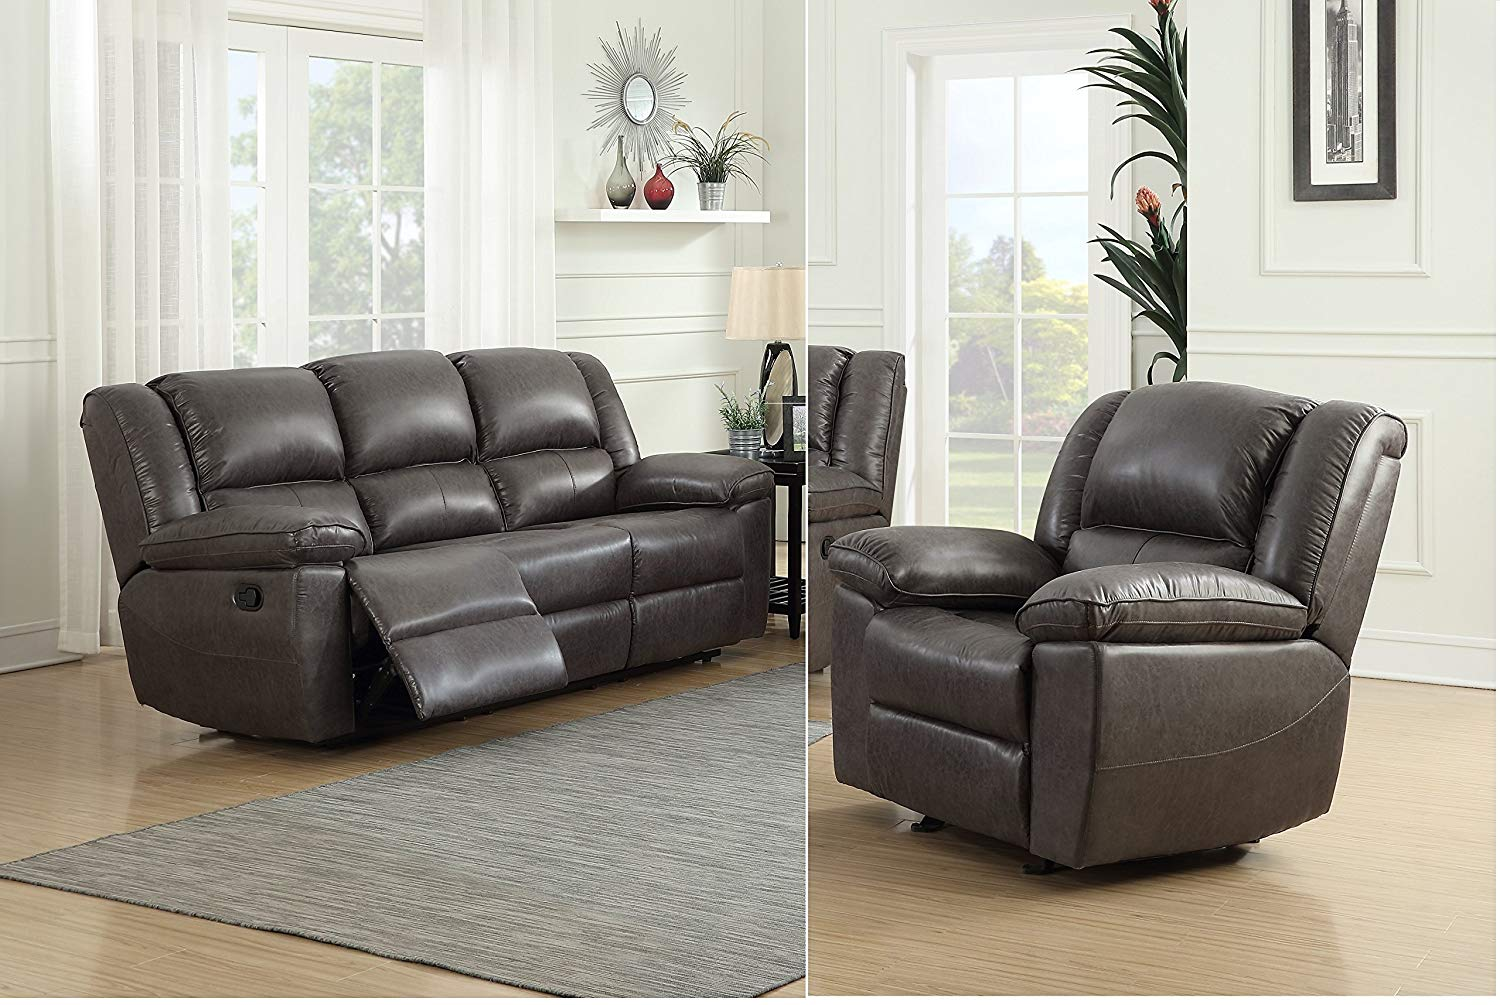 Get quotations · container furniture direct s6033 s c oregon fabric upholstered traditional reclining set with 83 5